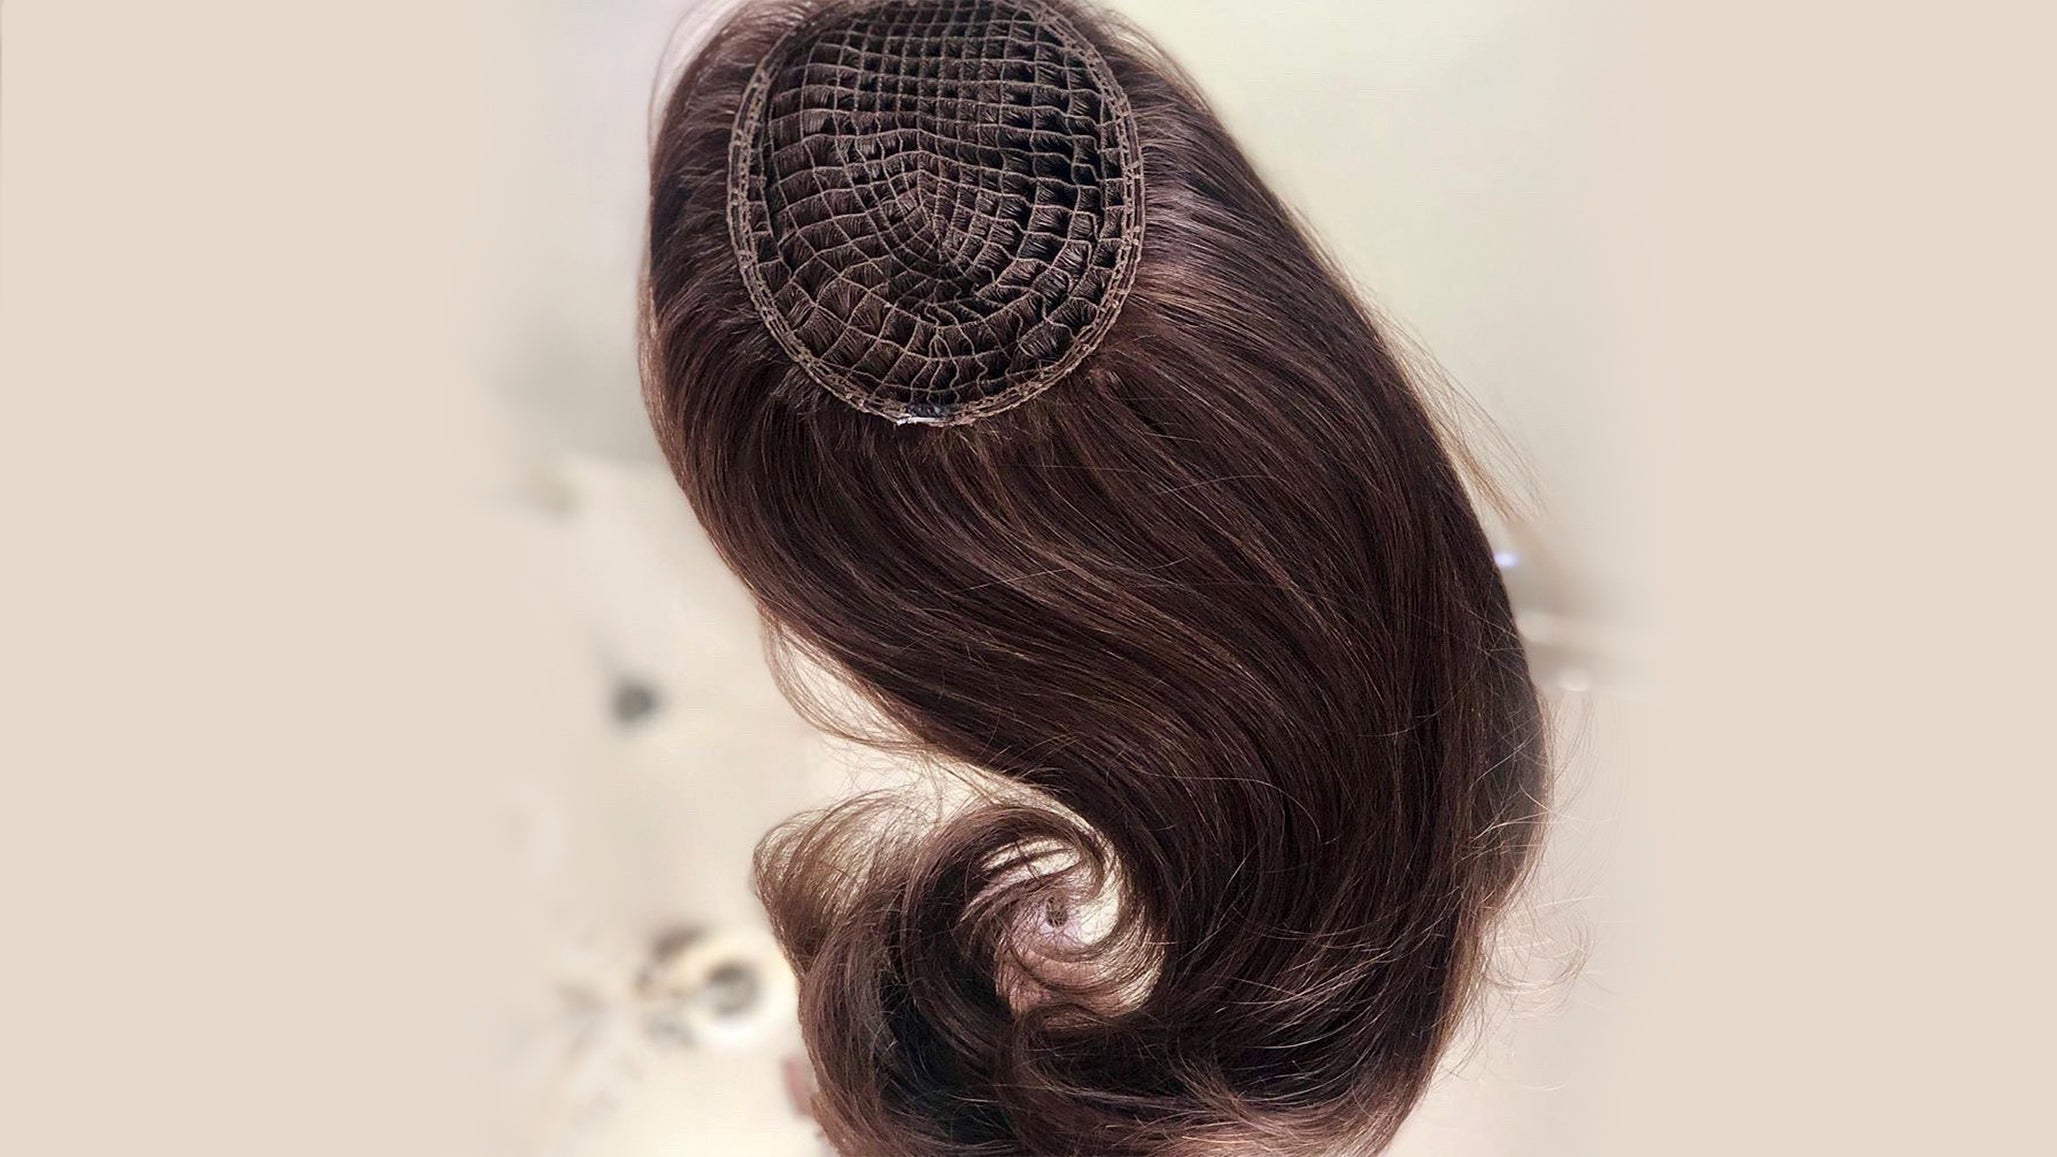 wigs, hair loss, bald, alopecia, thinning, hairdreams, lace front wigs, wigs near me, wig store near me, braided wigs, lace wig, amazon wigs, wig store